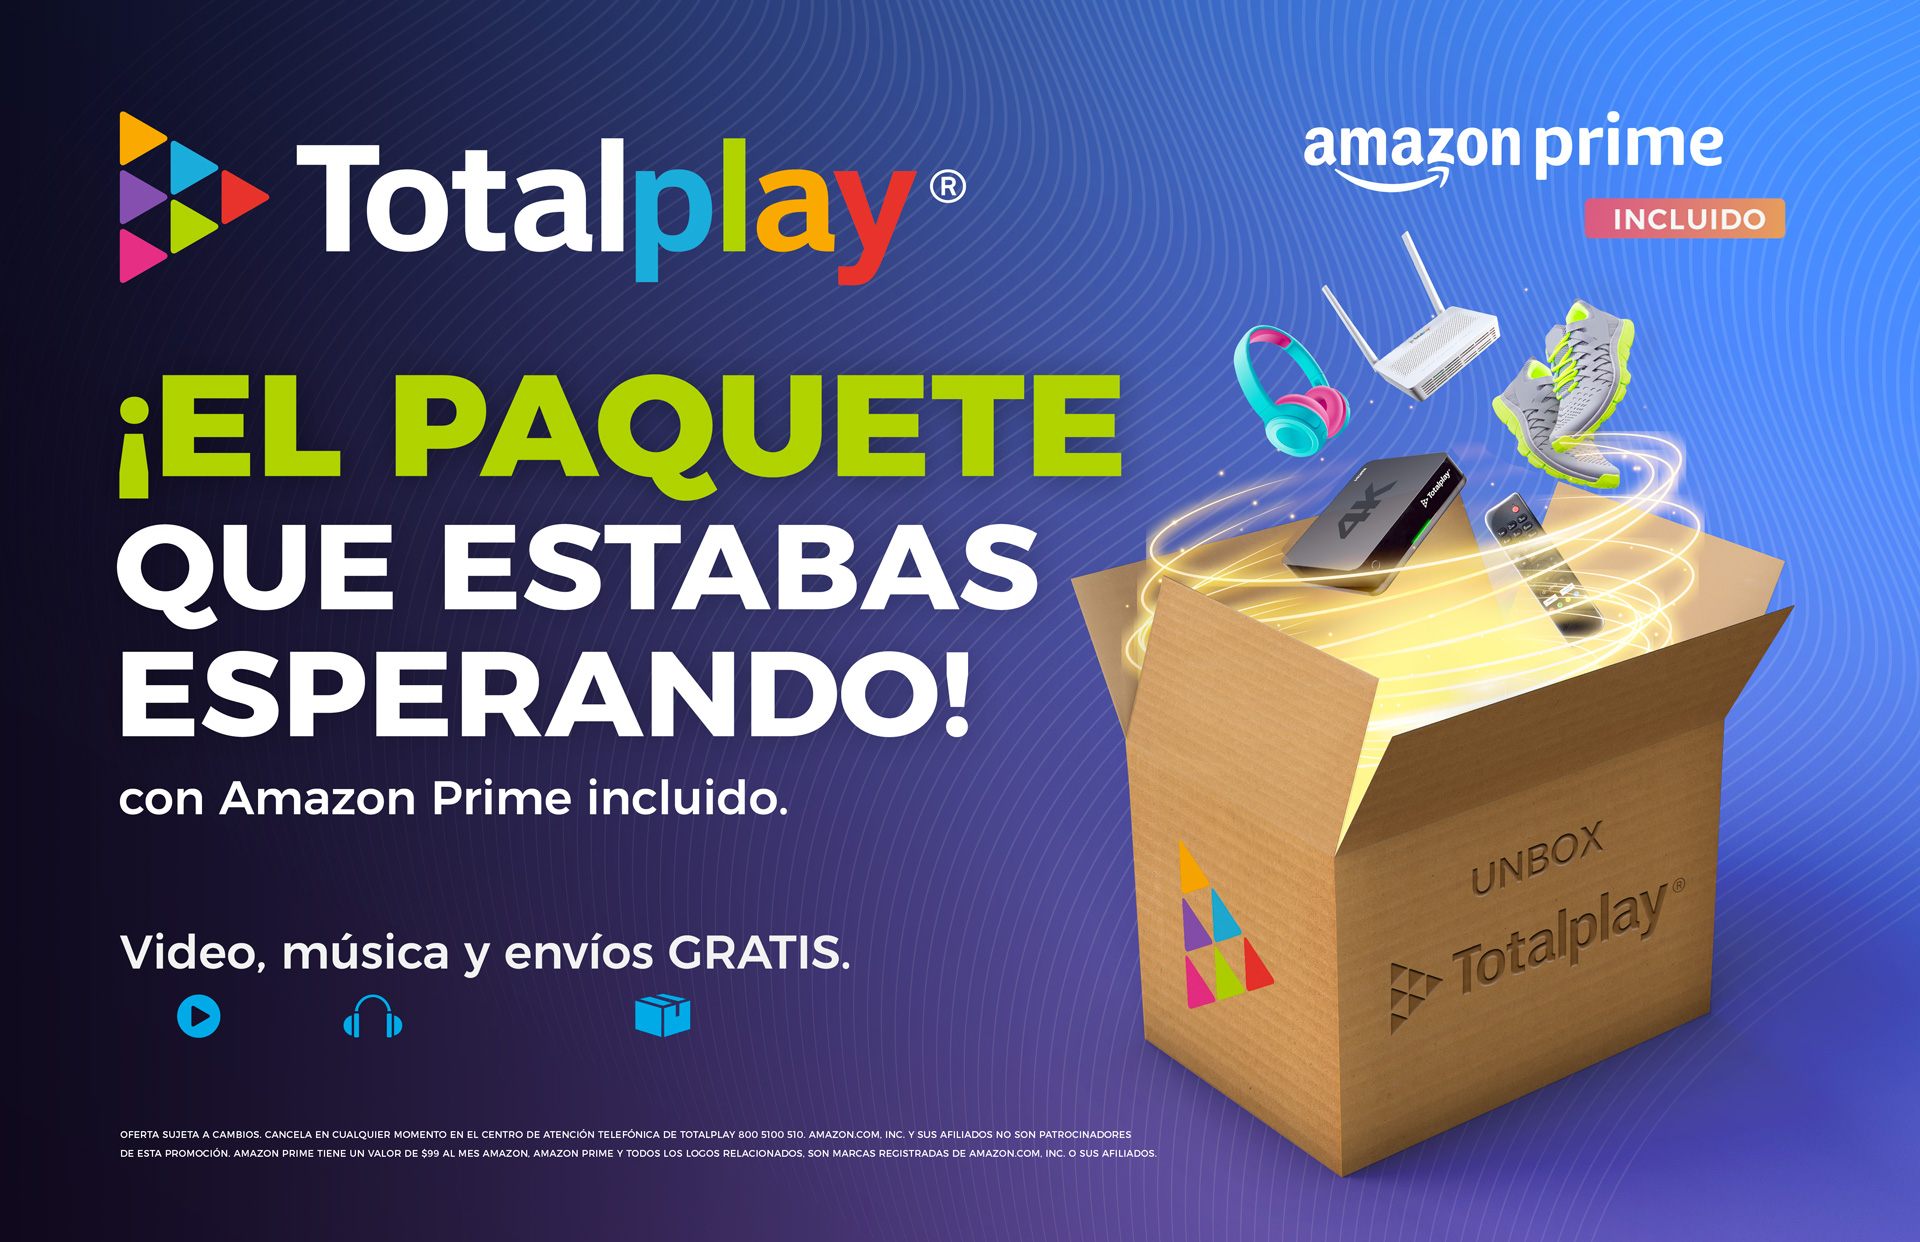 2020-08-18/totalplay-ahora-con-Amazon-Prime